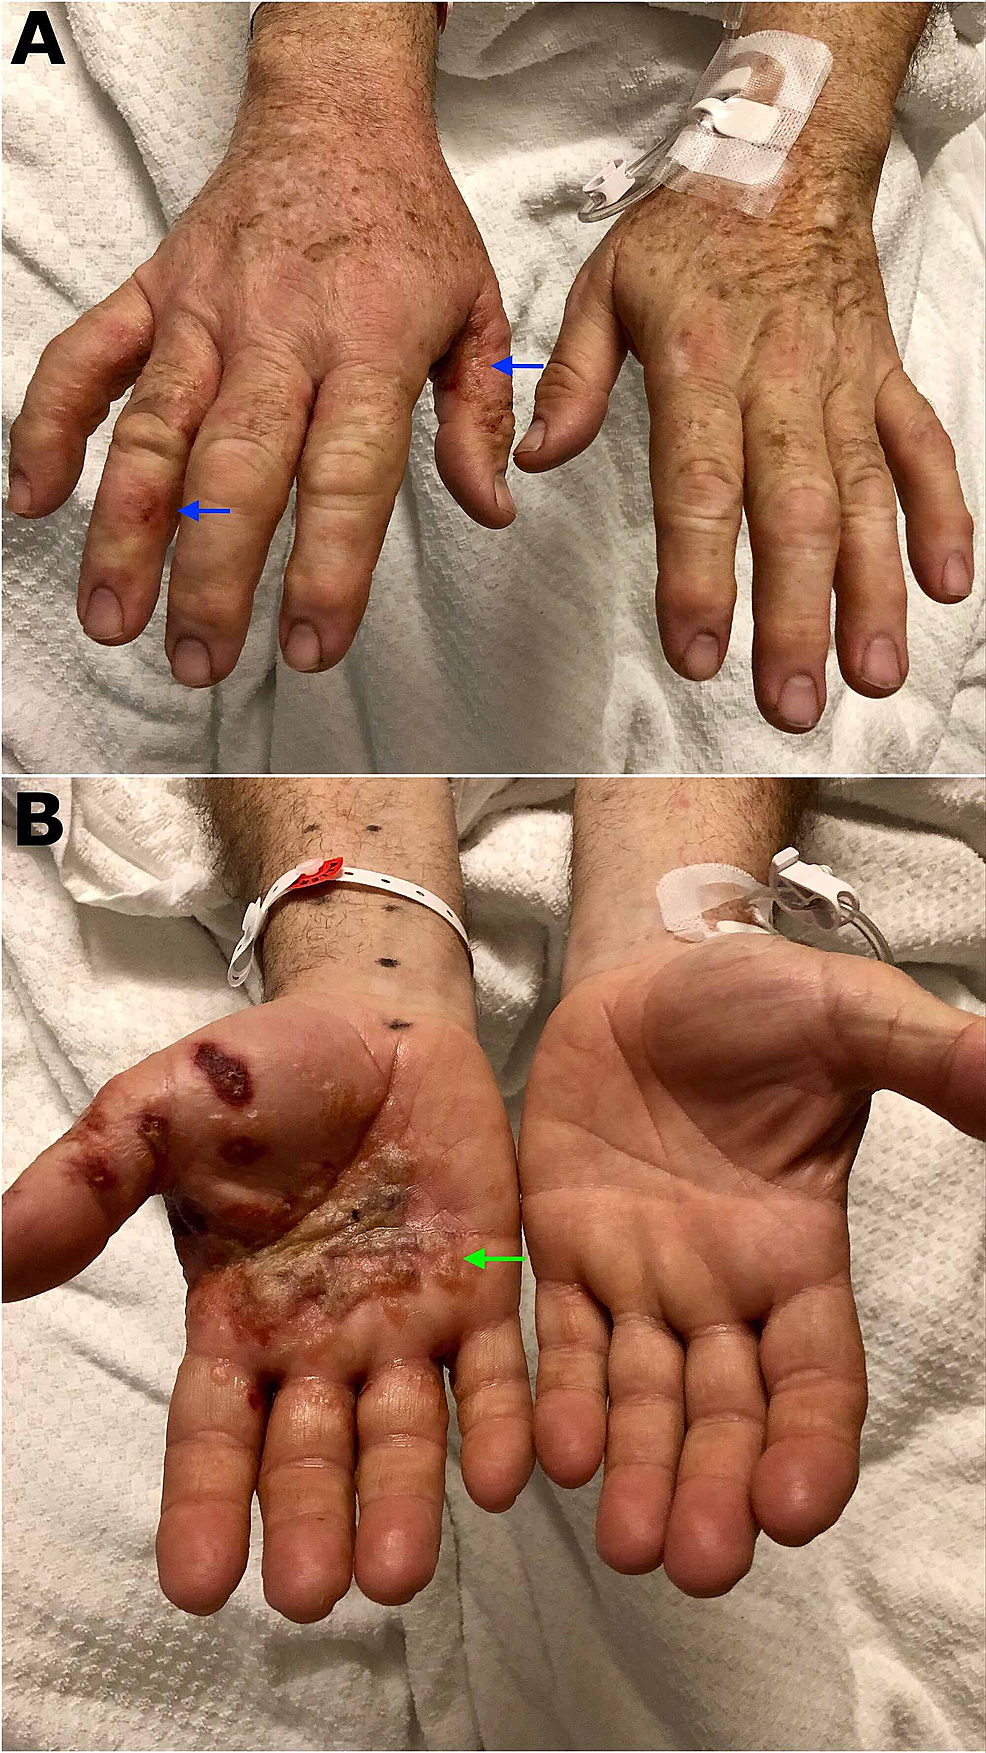 """Vesicular-lesions-located-in-the-lateral-aspect-of-the-fingers-(blue-arrows)-(A).-Palmar-lesions-containing-vesicles-and-bullae-that-conglomerate-getting-the-classic-""""tapioca-pudding""""-appearance-of-dyshidrotic-eczema-(green-arrow)-(B)"""